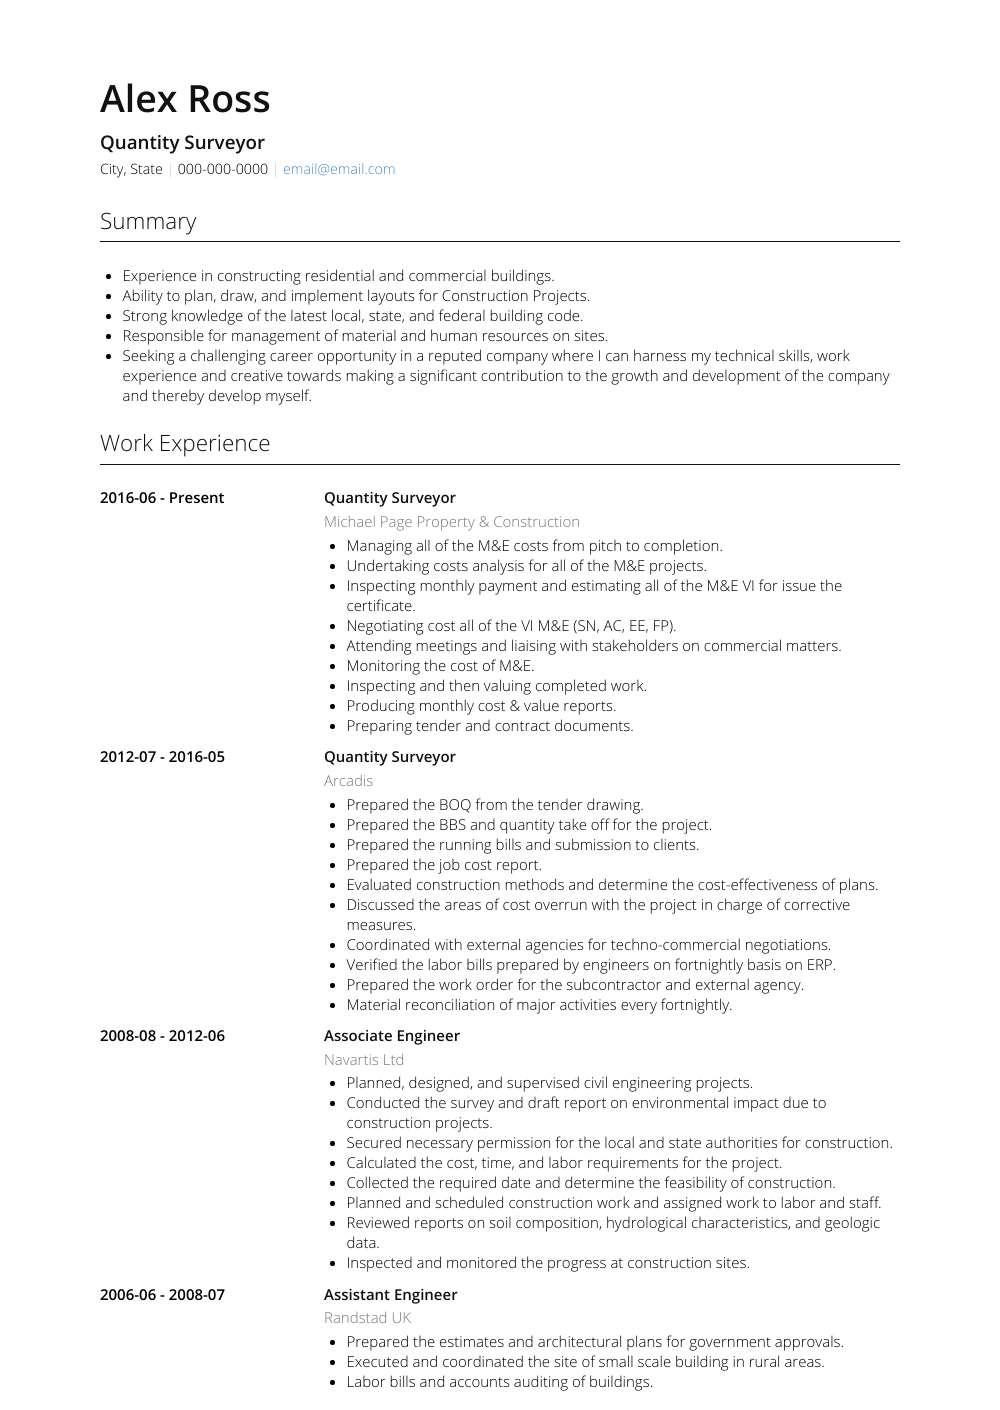 Quantity Surveyor Resume Samples Templates Visualcv Resume